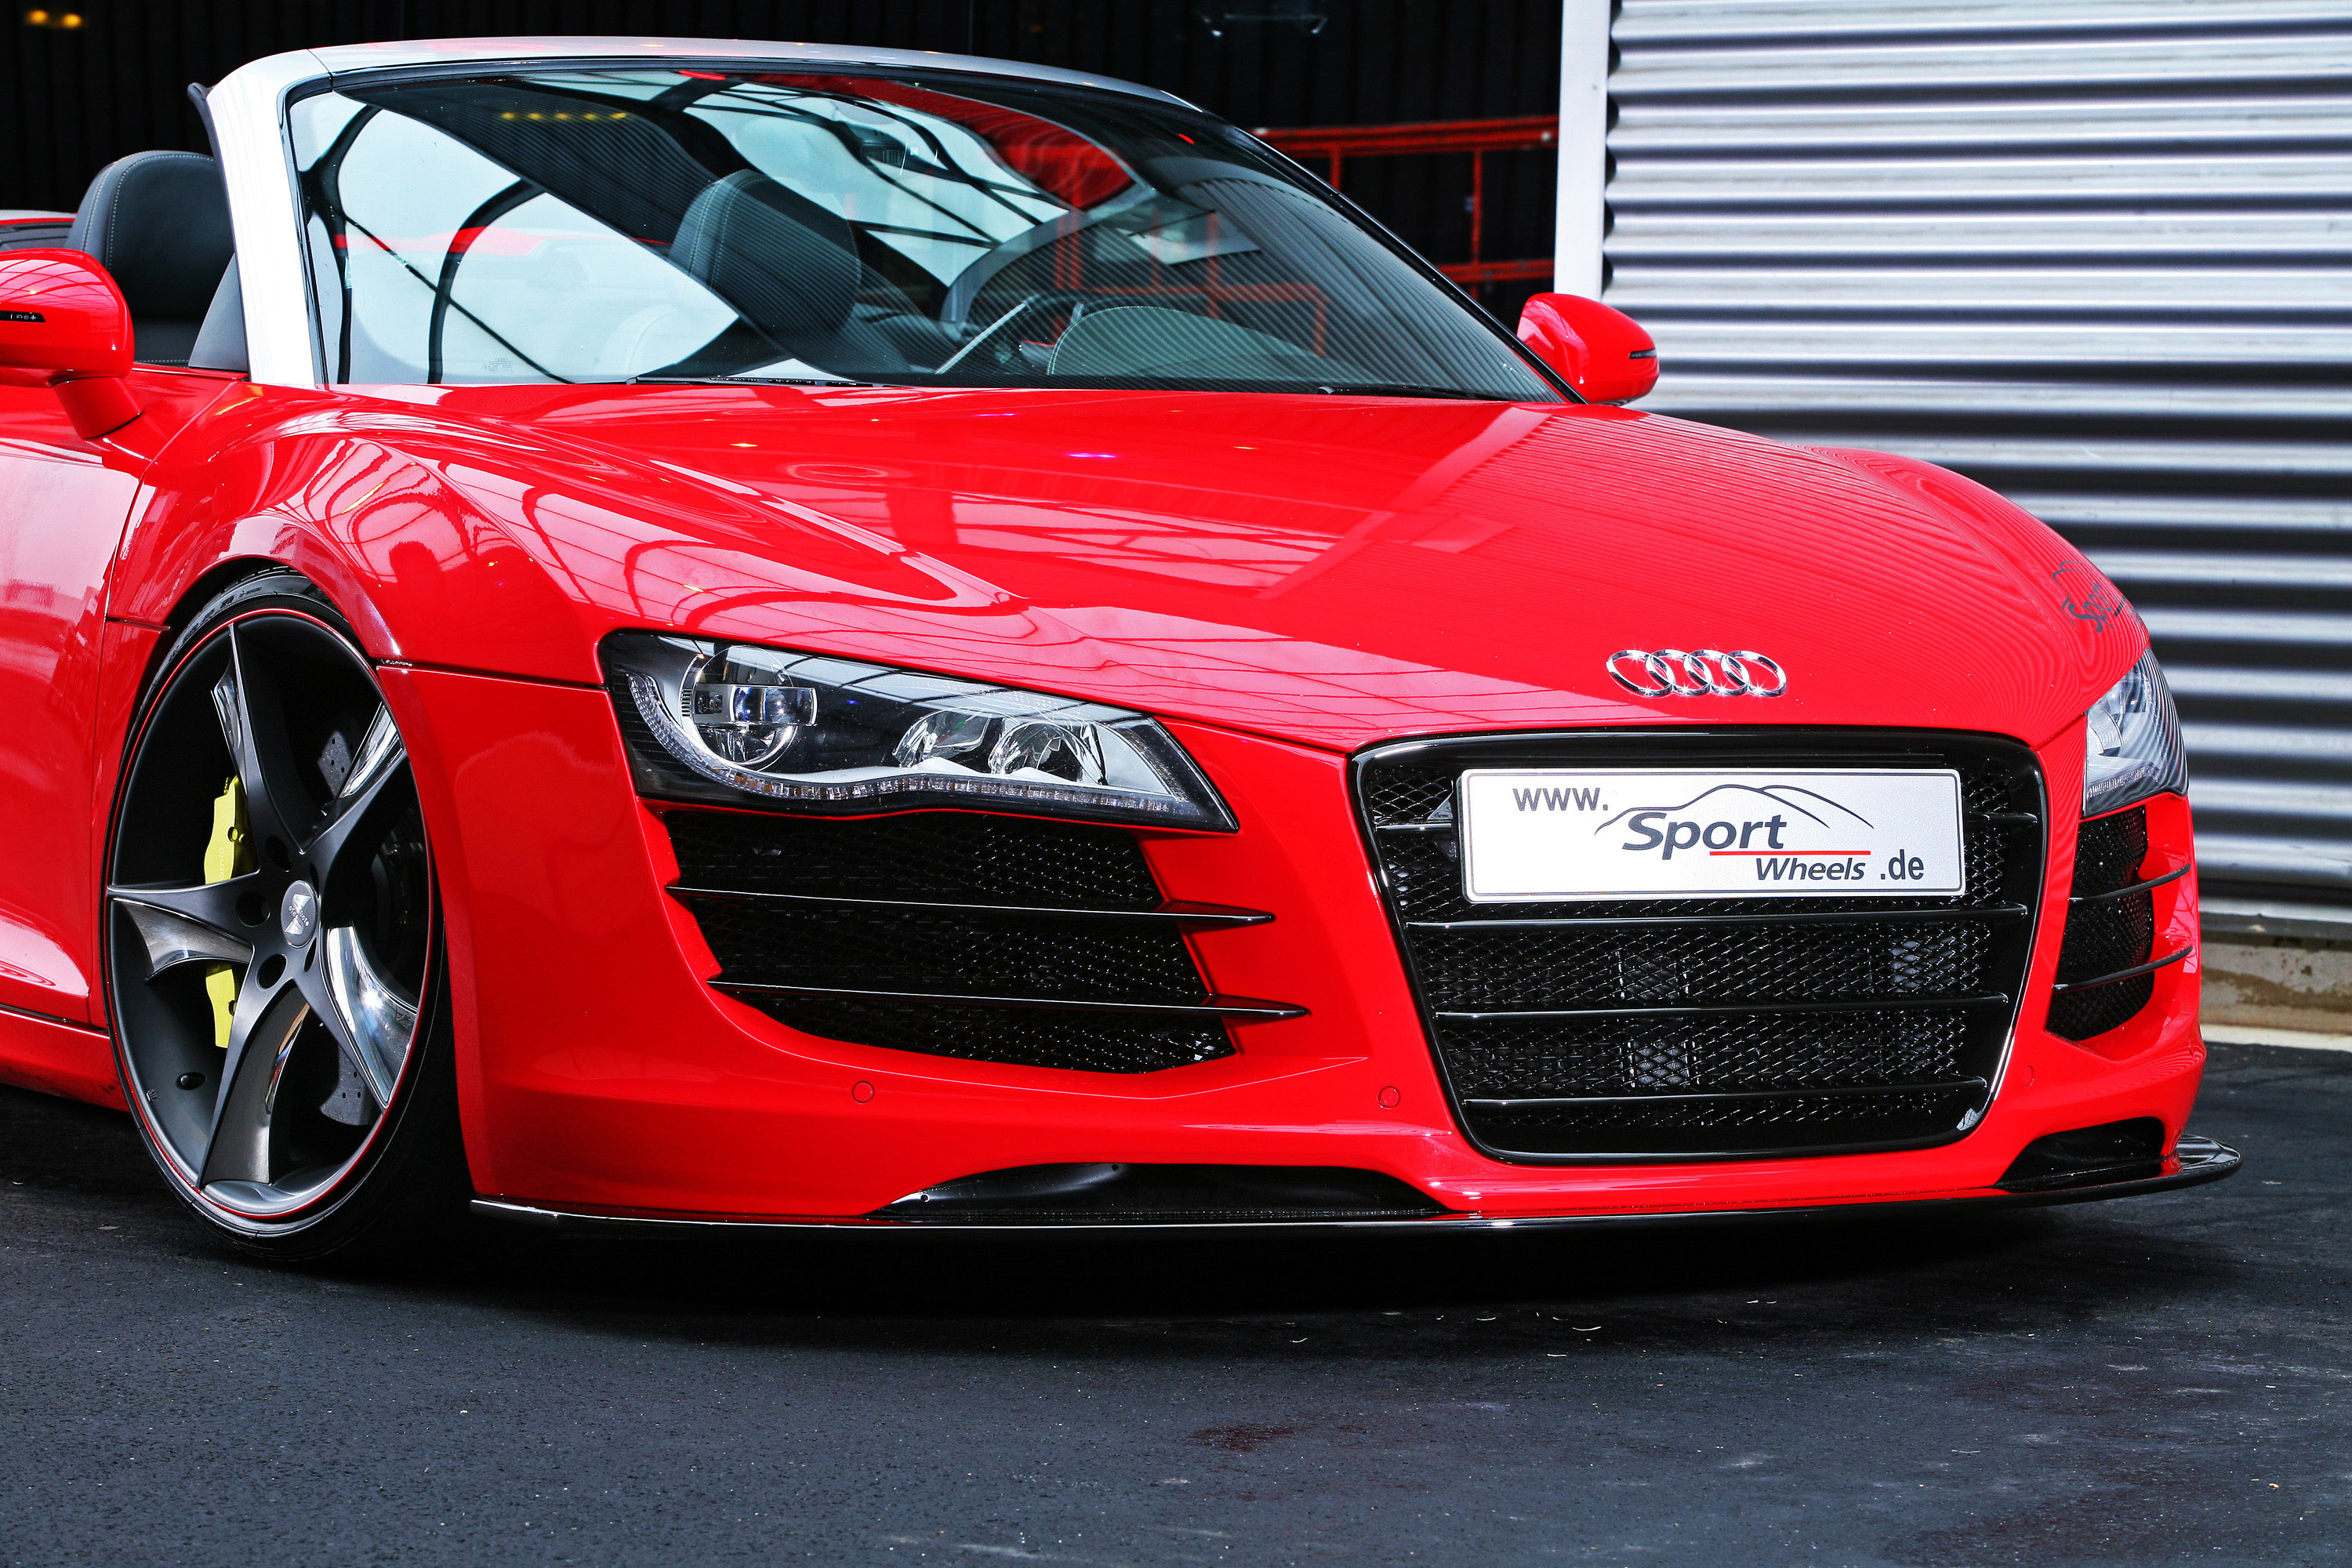 2016 Audi RS7 Parts and Accessories  amazoncom